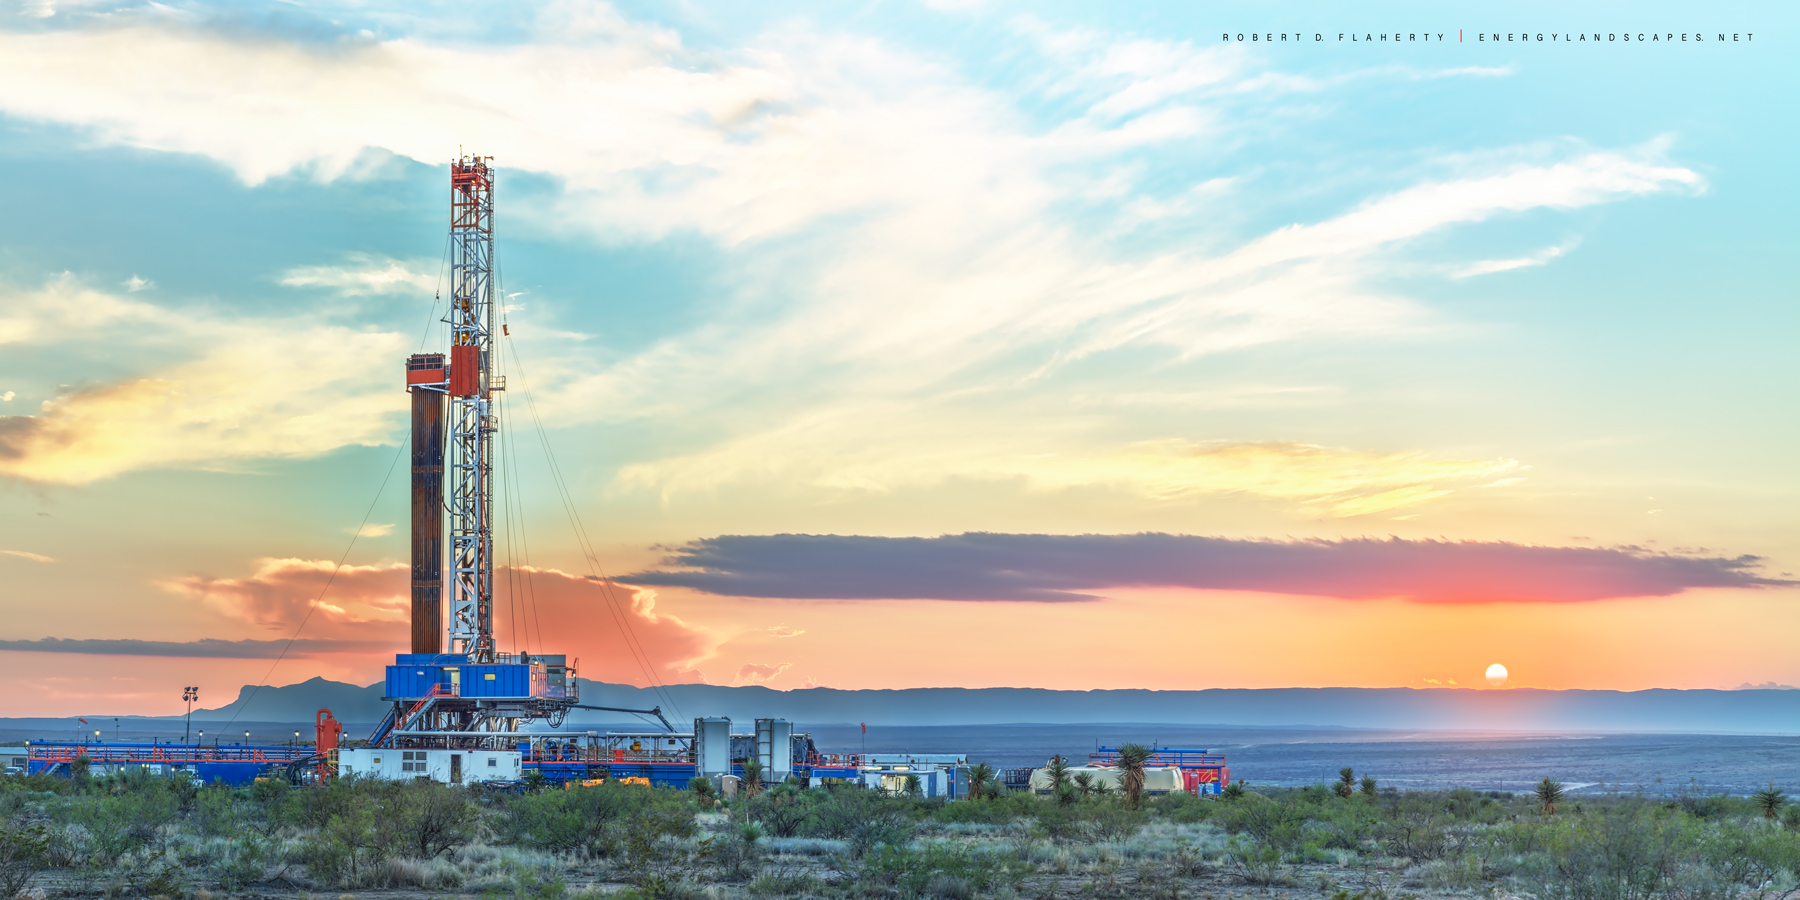 pad drilling, panorama, high resolution, Guadalupe Pass, Western Texas, New Mexico, Chevron, Delaware Basin, Permian Basin, drilling rig, mountains, Guadalupe Mountains, Orla Texas, Fall, sunset, mura, photo